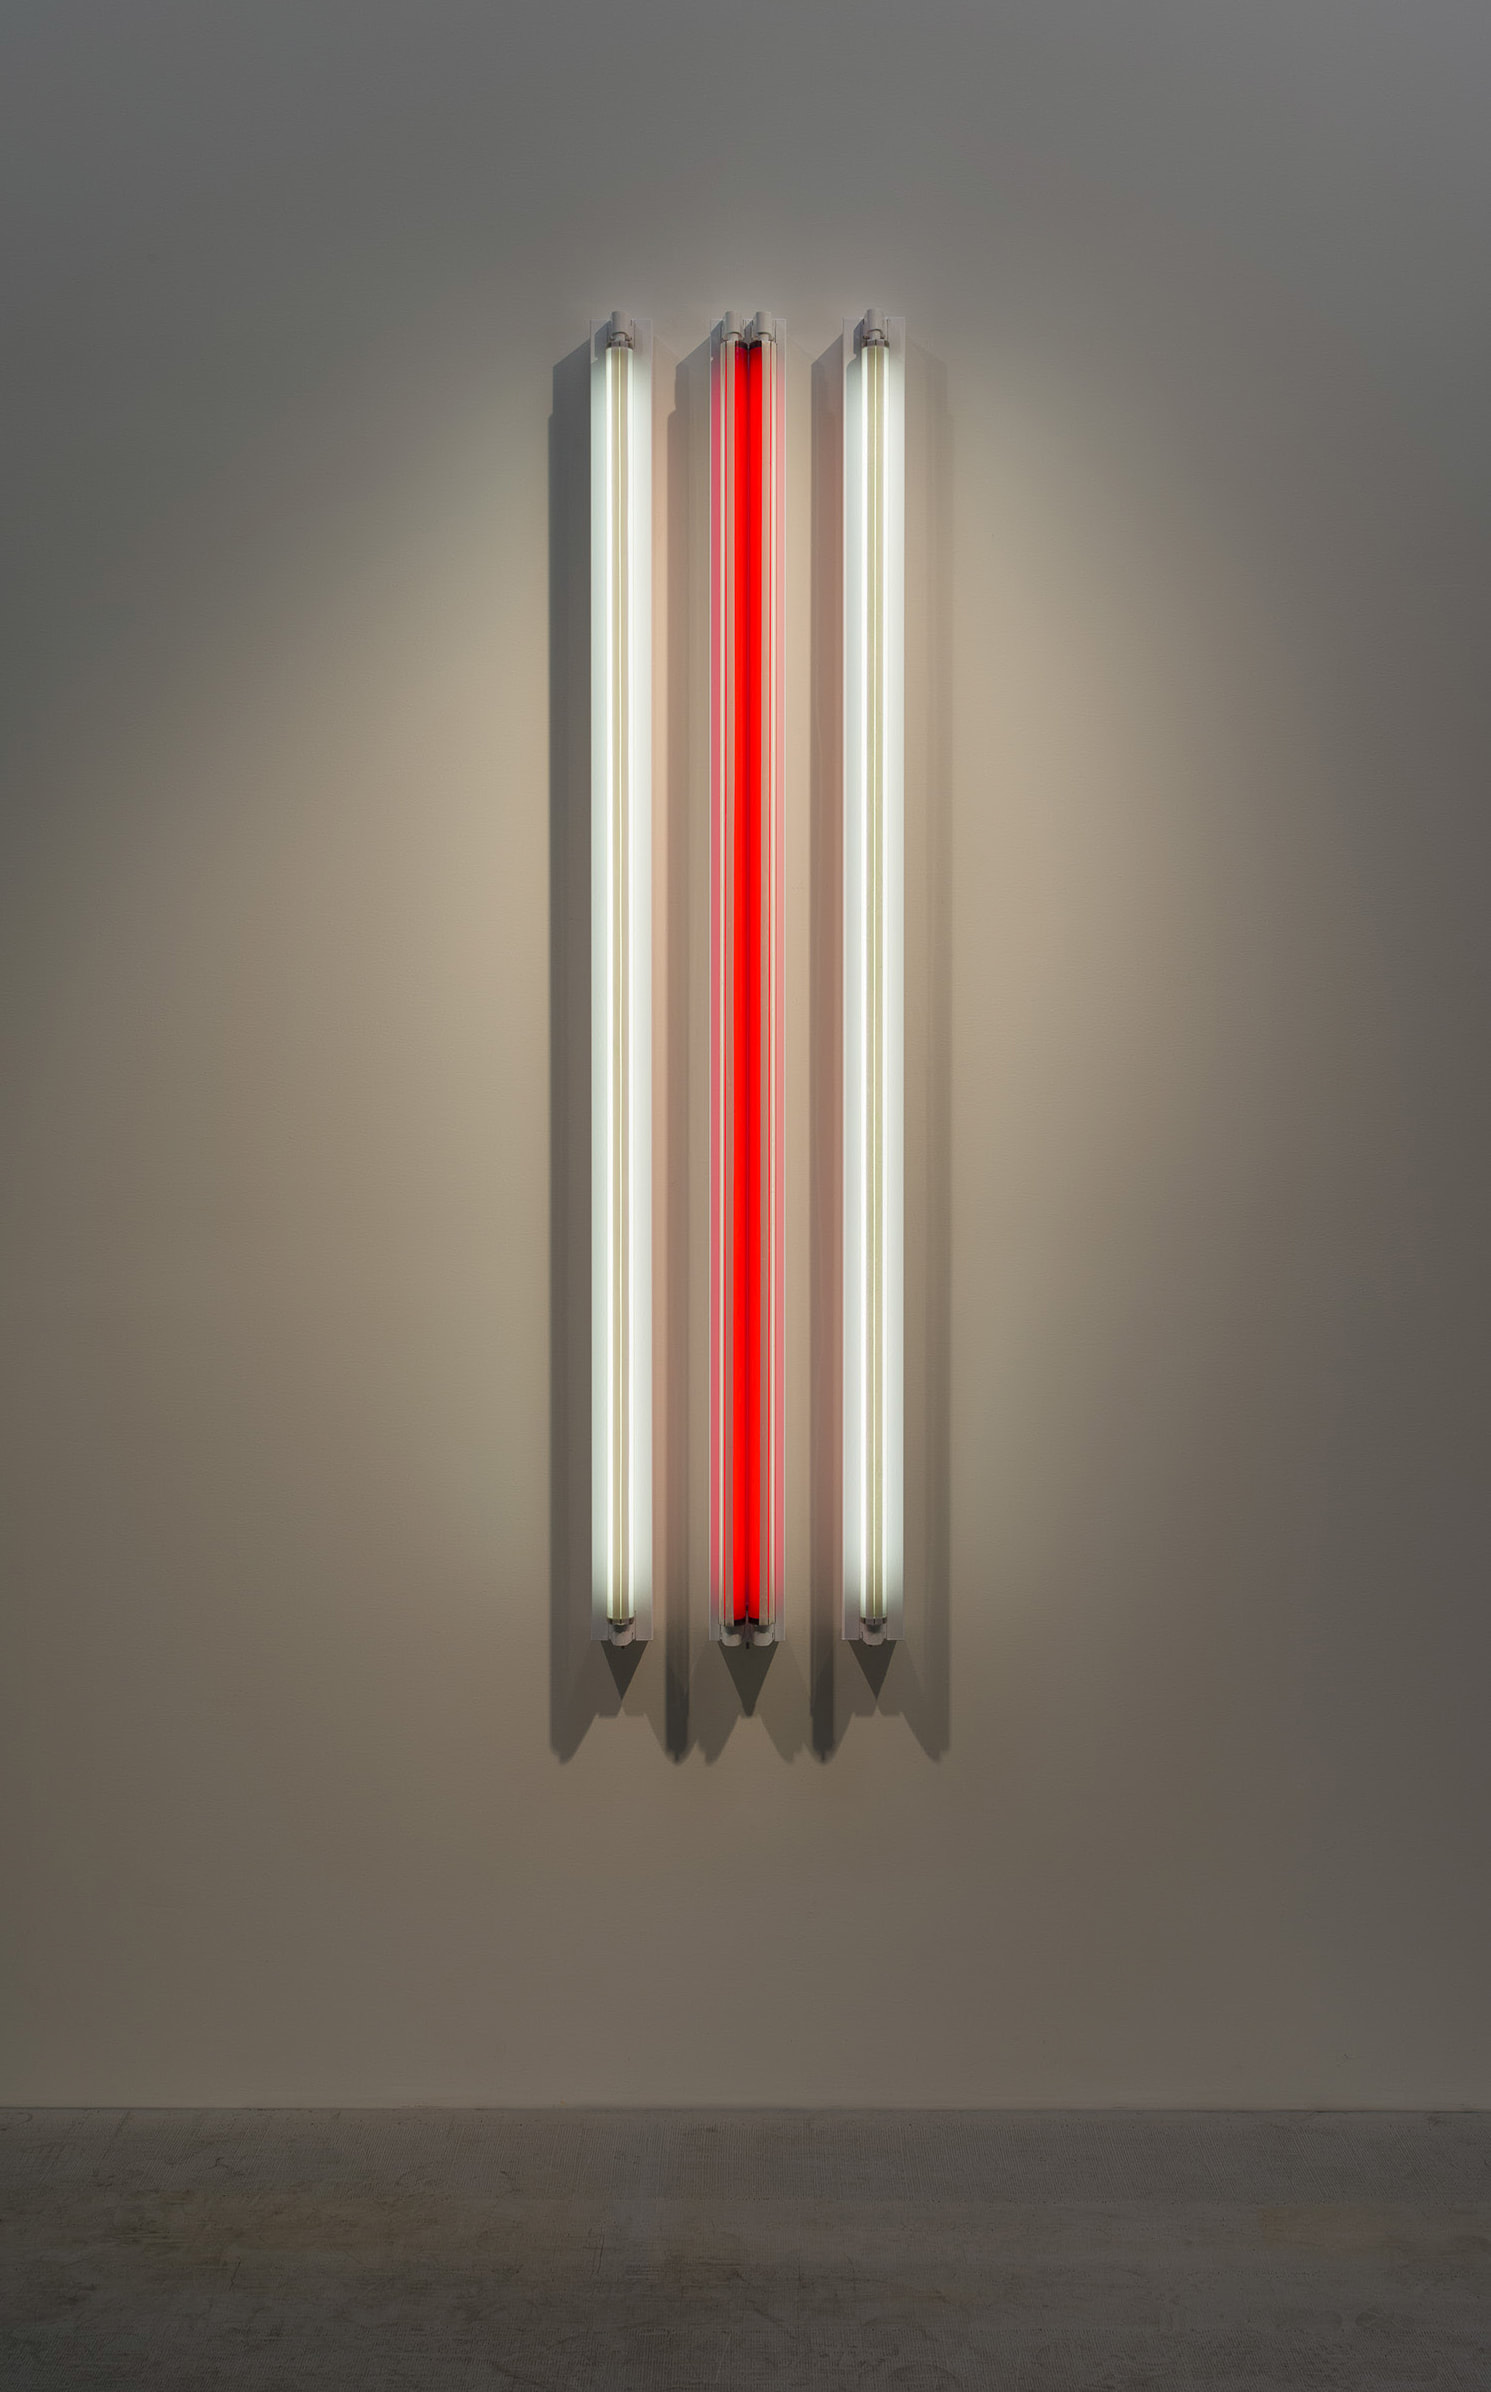 "<span class=""link fancybox-details-link""><a href=""/exhibitions/160/works/artworks14398/"">View Detail Page</a></span><div class=""artist""><strong>ROBERT IRWIN</strong></div><div class=""title""><em>#3x 6'D Four Fold</em>, 2016</div><div class=""medium"">light, shadow, reflection, color<br>Grey #3 / Red TWS <--> / Grey #3</div><div class=""dimensions"">182.9 x 41 x 11 cm<br>72 1/8 x 16 1/8 x 4 in</div>"